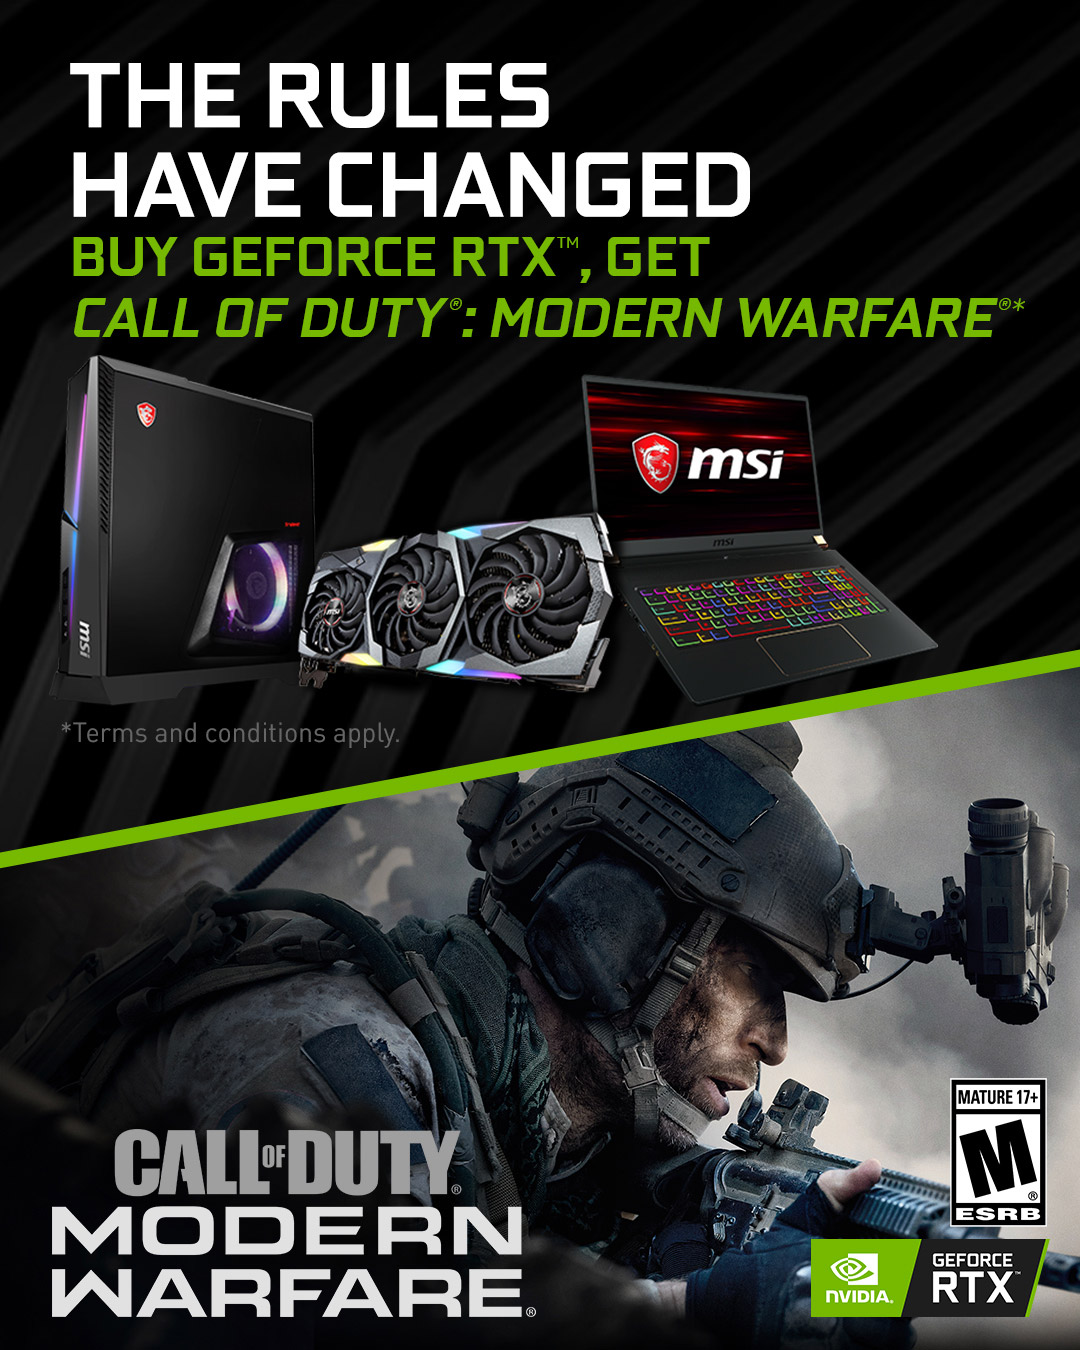 Call of Duty Modern Warfare x MSI